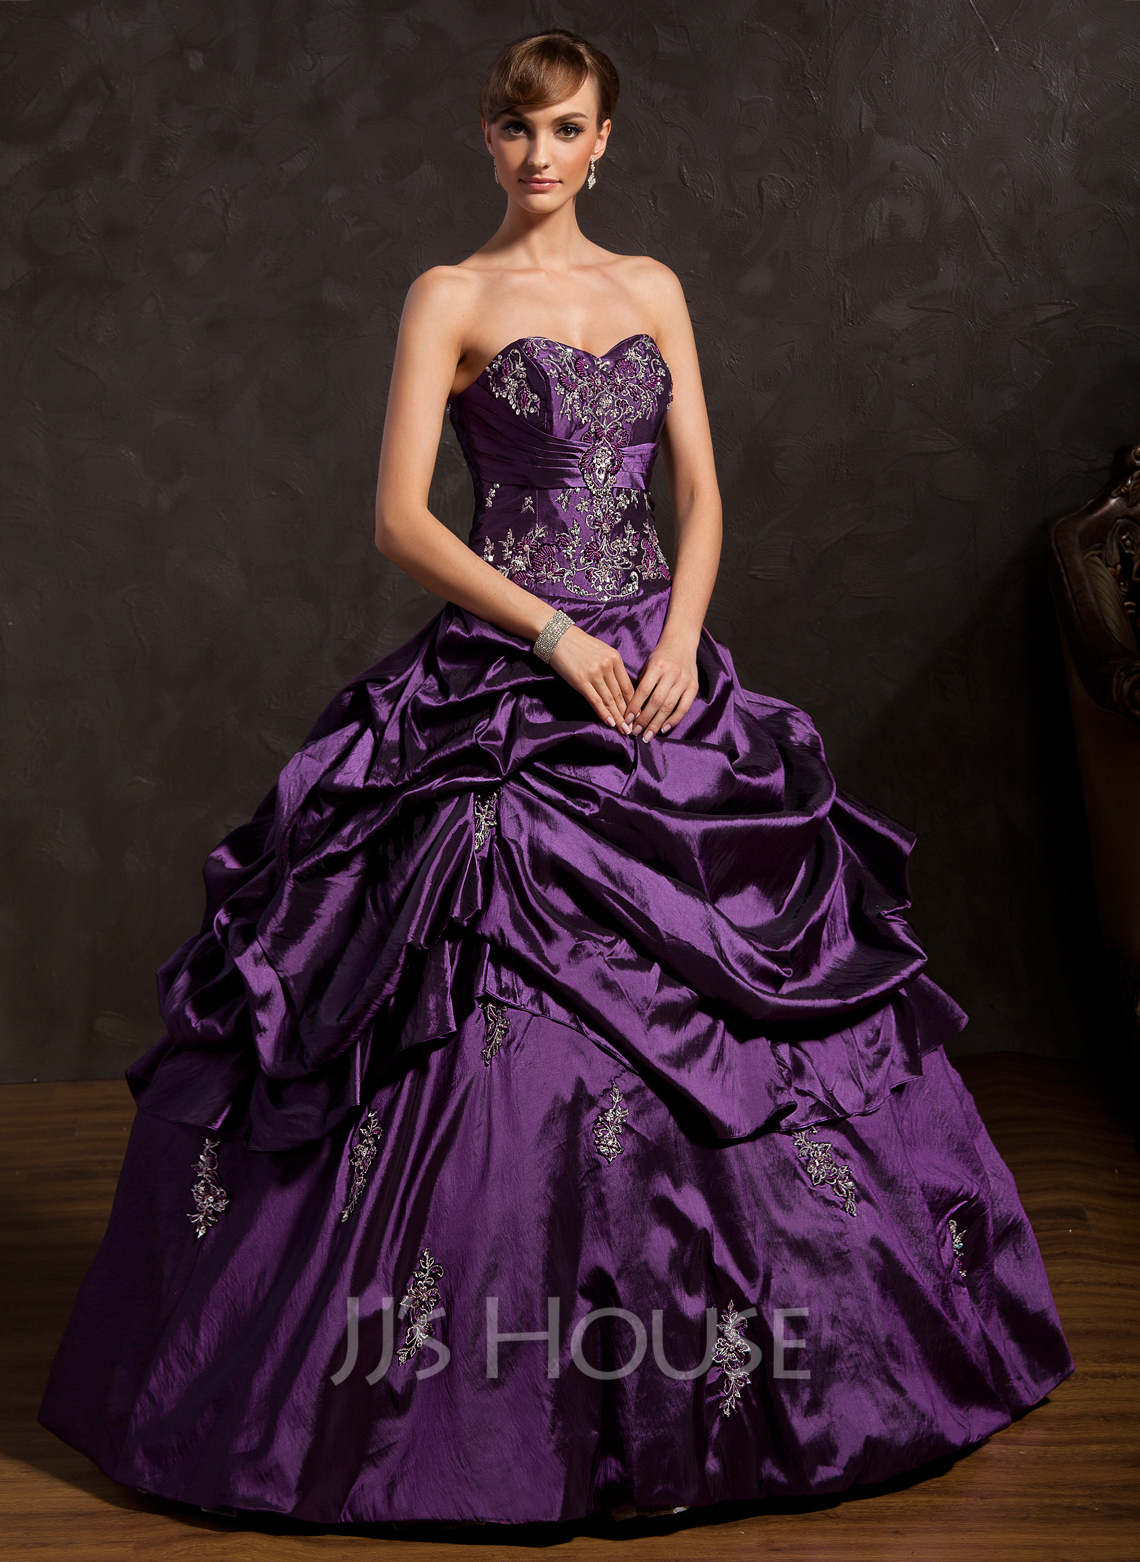 fcd0961cb95 Ball-Gown Sweetheart Floor-Length Taffeta Quinceanera Dress With Embroidered  Ruffle Beading. Loading zoom